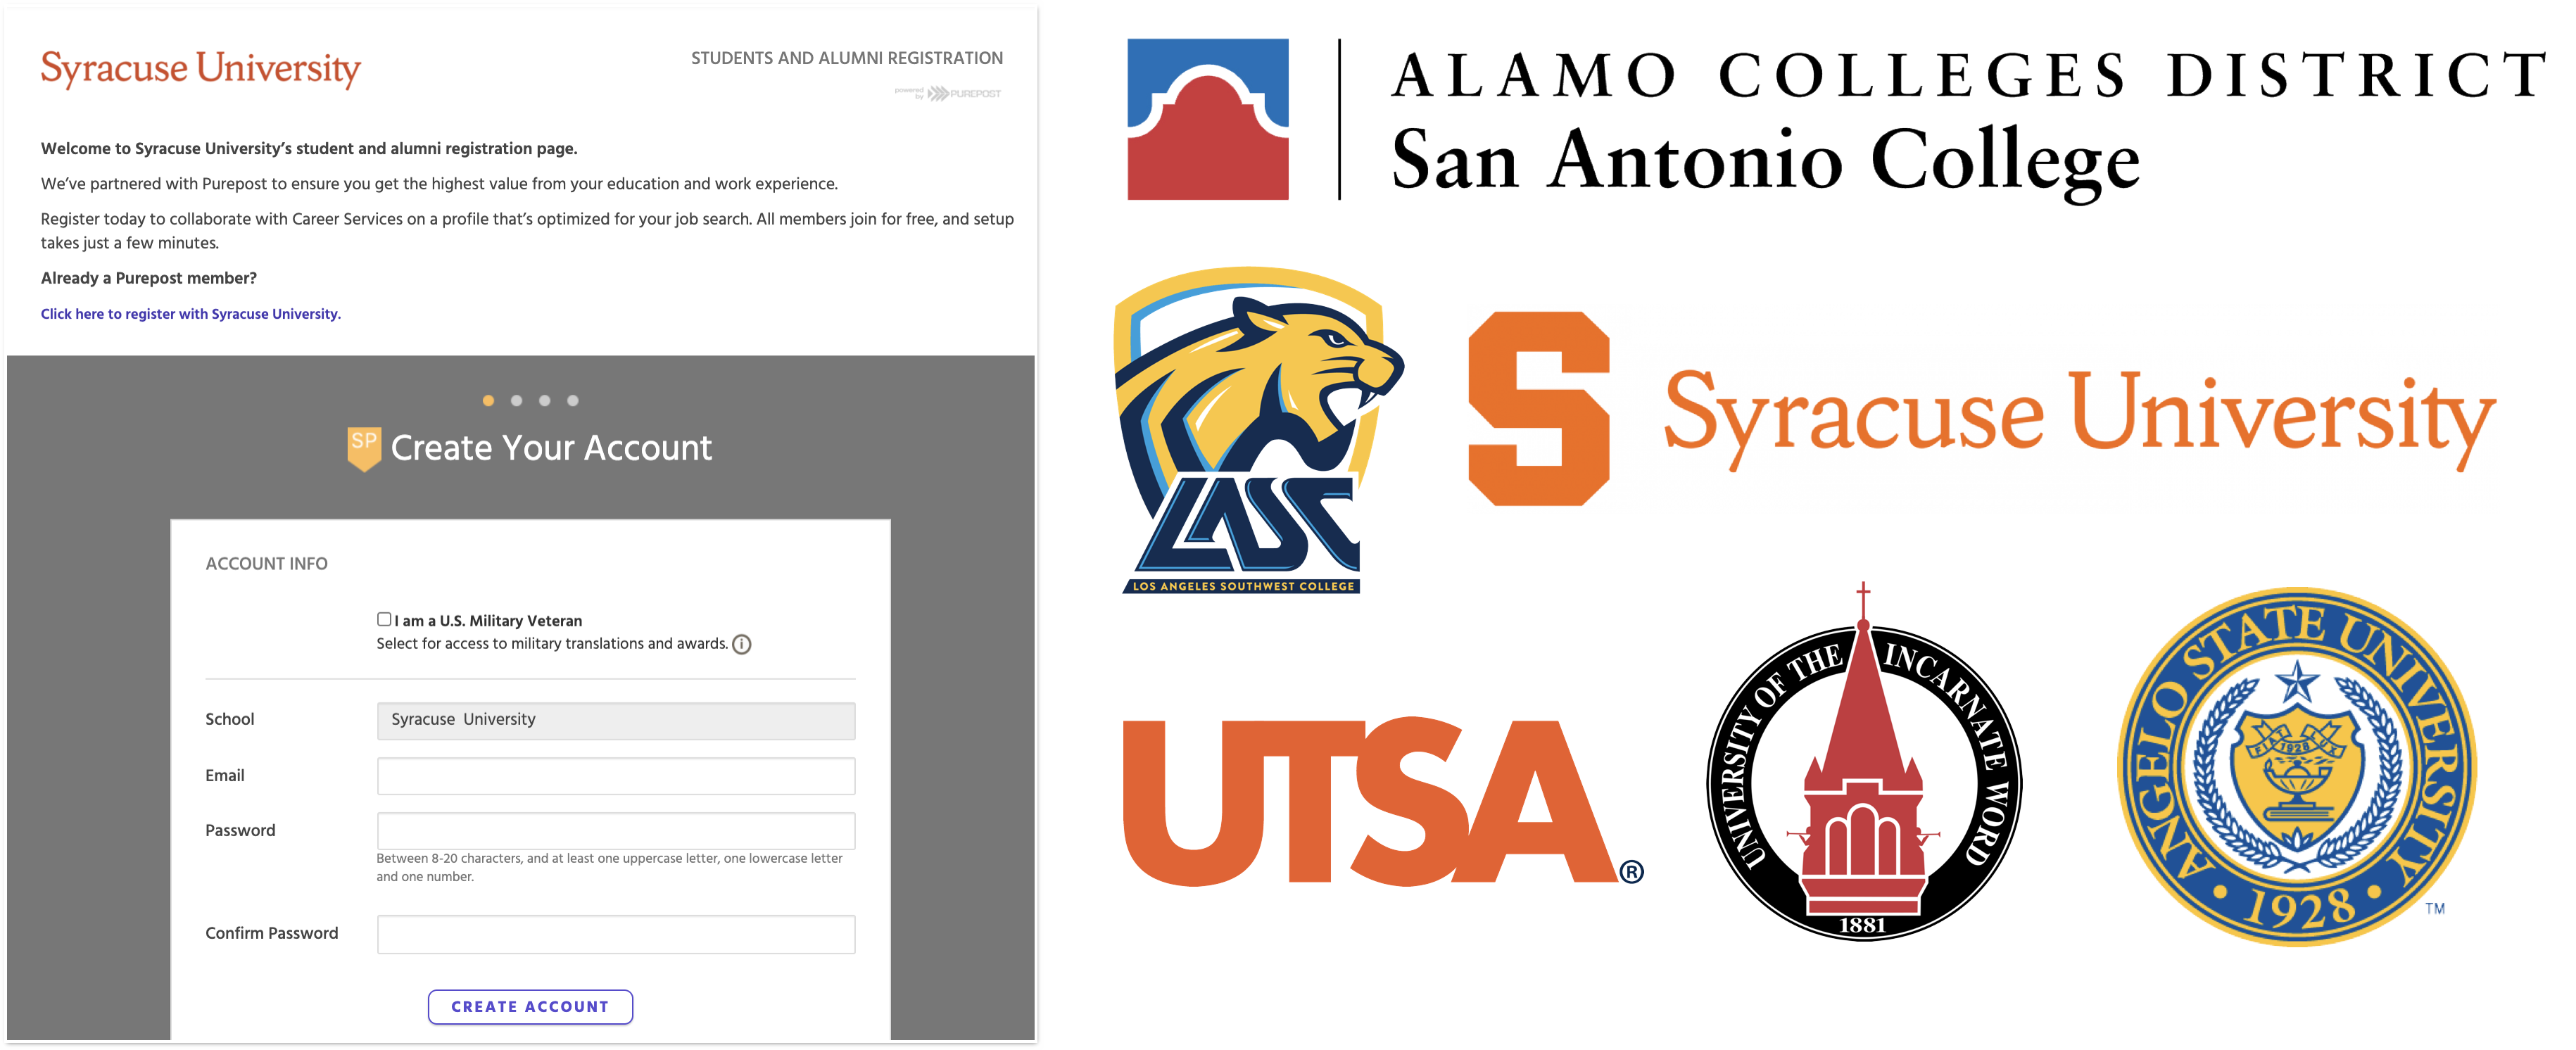 University Registration Page and School Logos